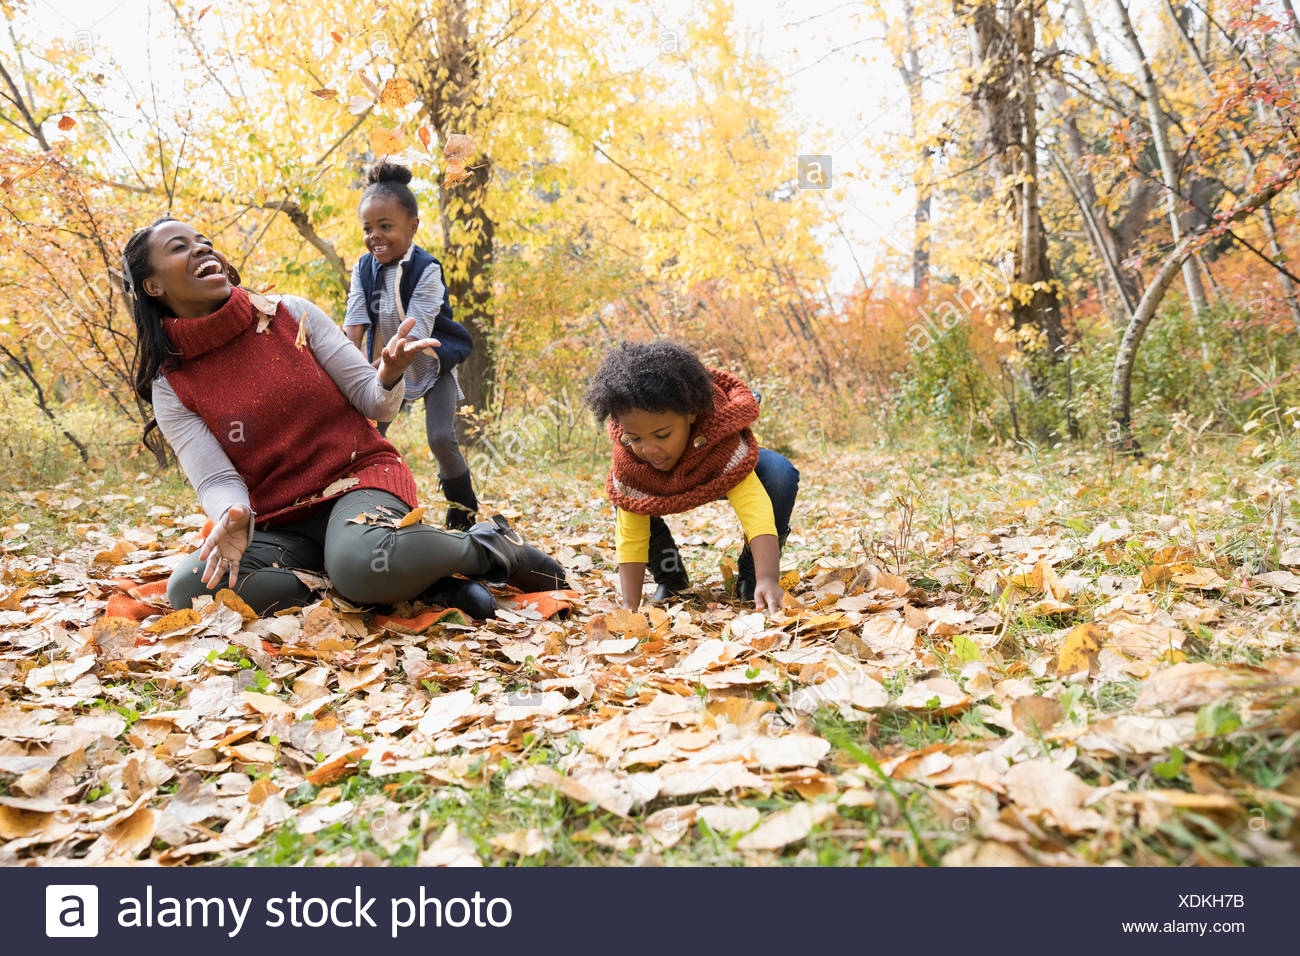 Mother and daughters playing throwing autumn leaves in park - Stock Image